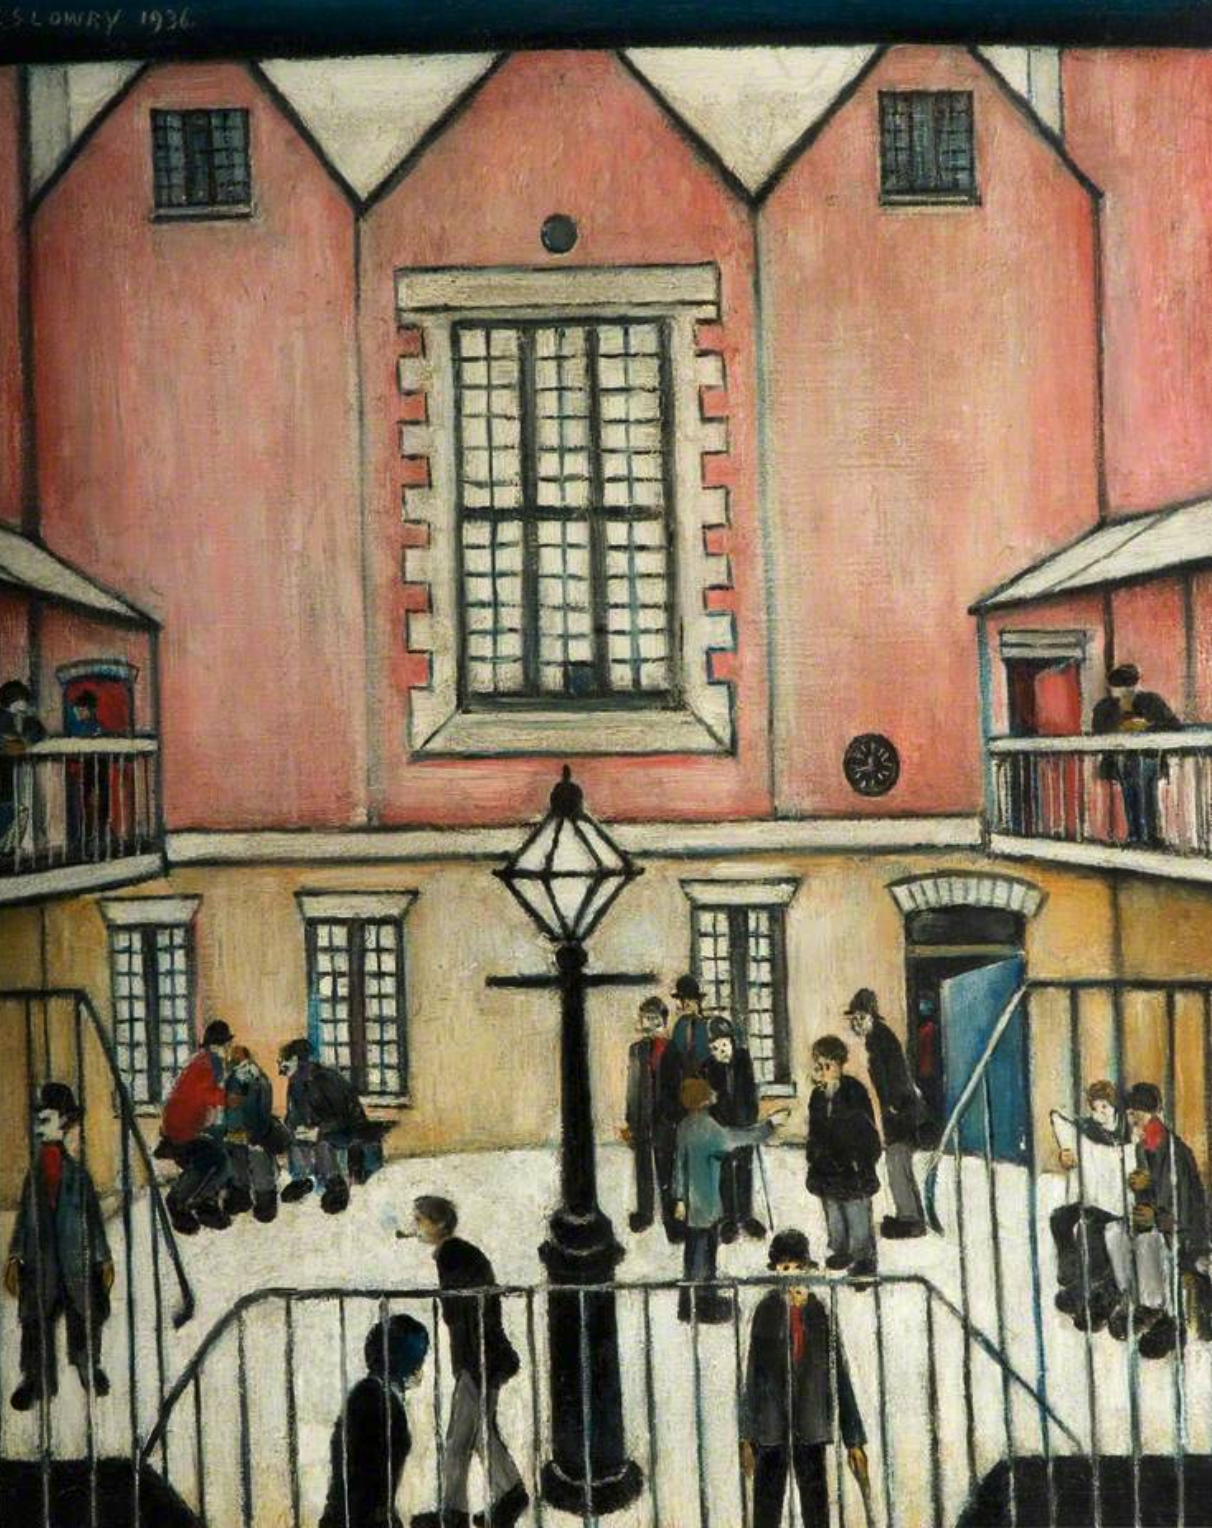 The Courtyard (1939) by Laurence Stephen Lowry (1887 - 1976), English artist.